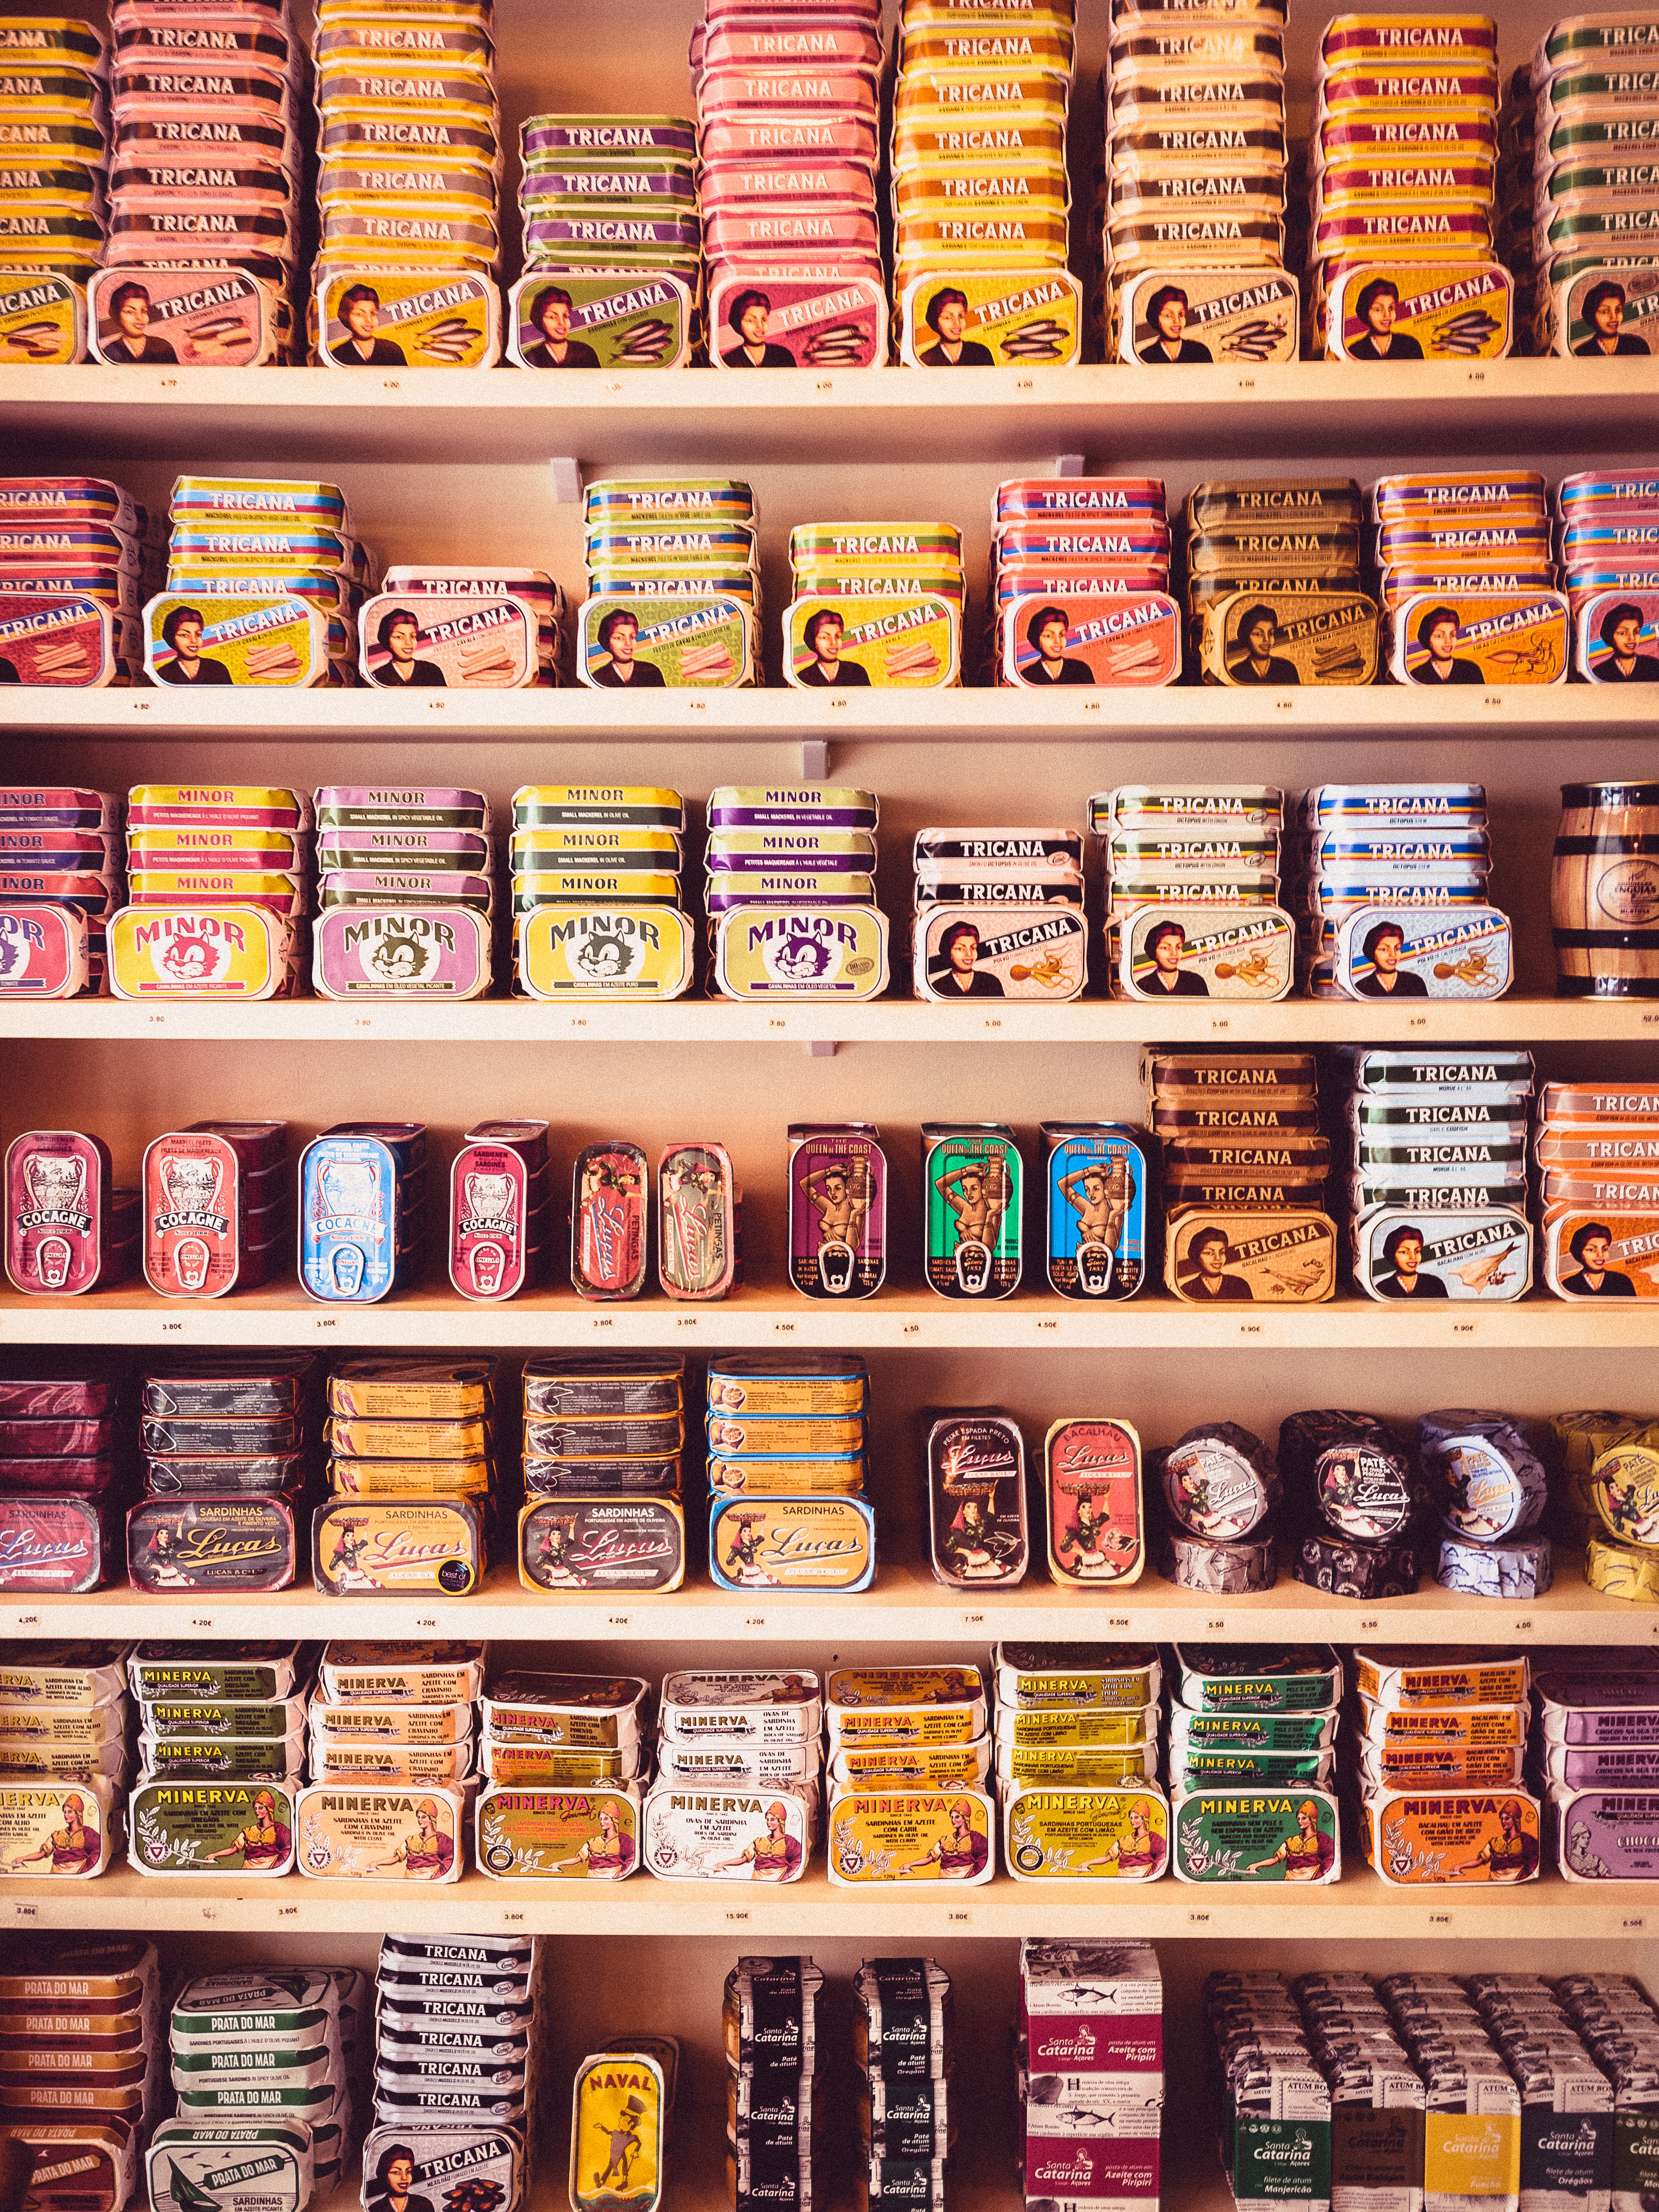 Surprising foods that keep well in a pantry